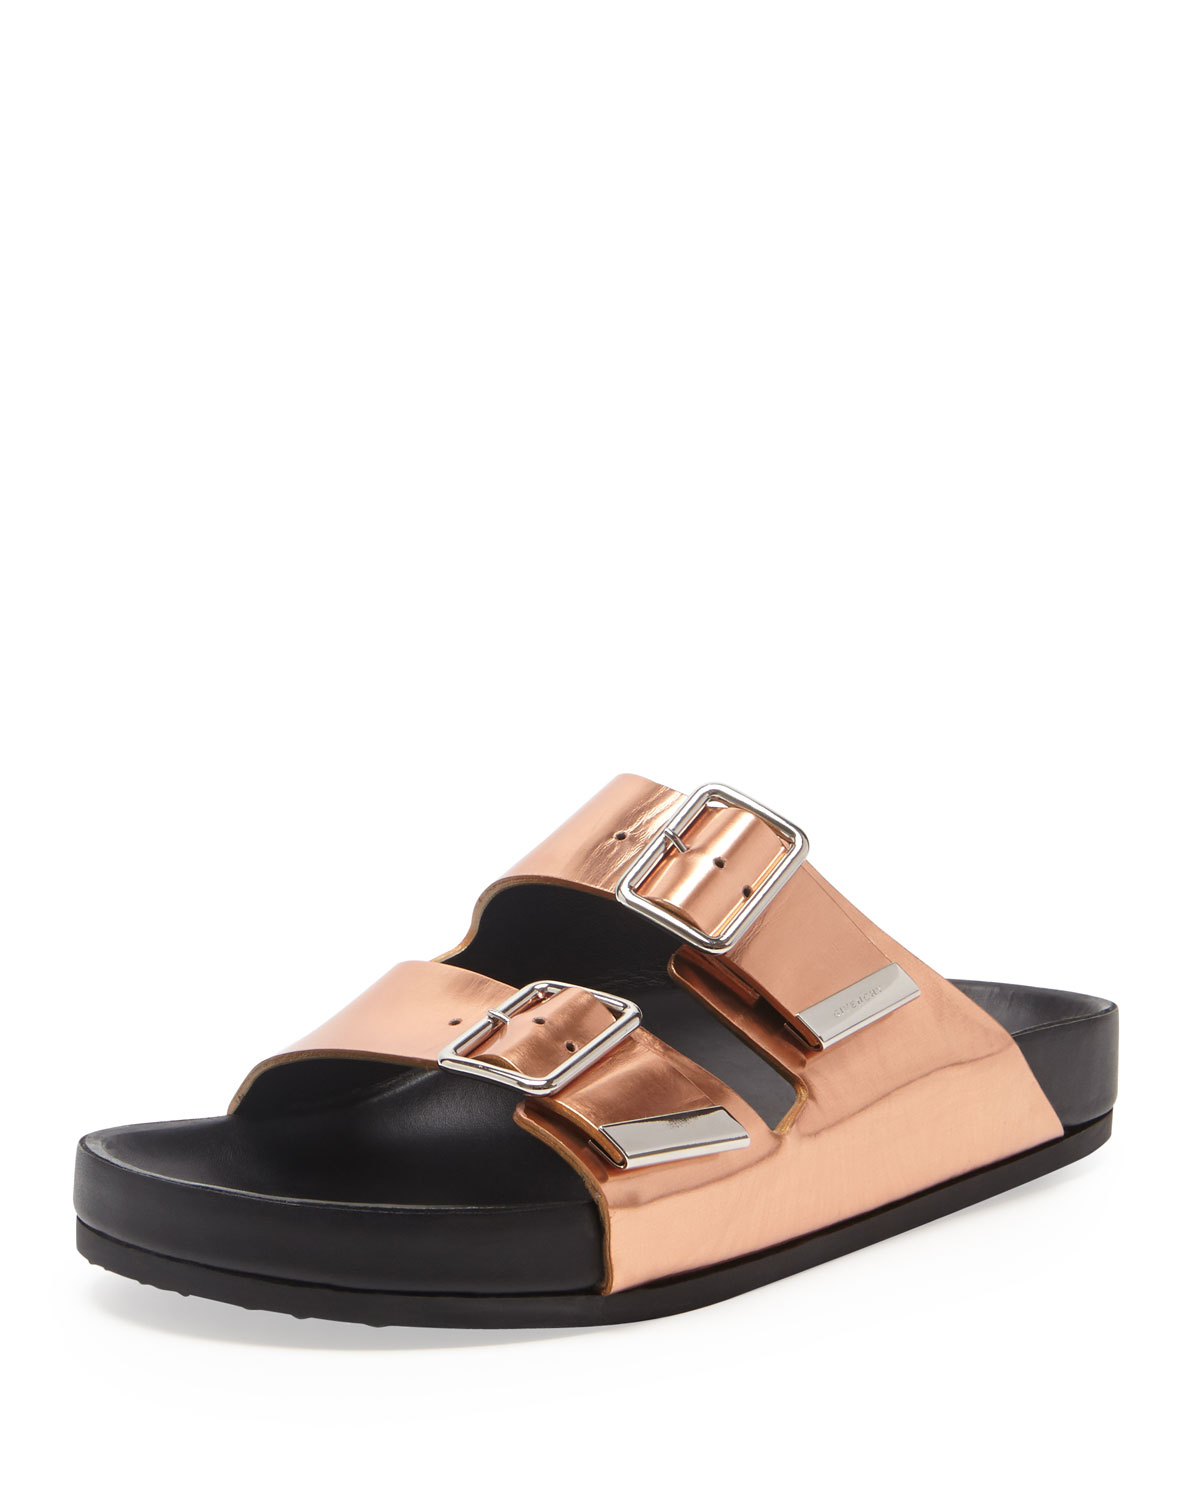 Givenchy Swiss Metallic Flat Sandal In Metallic Lyst